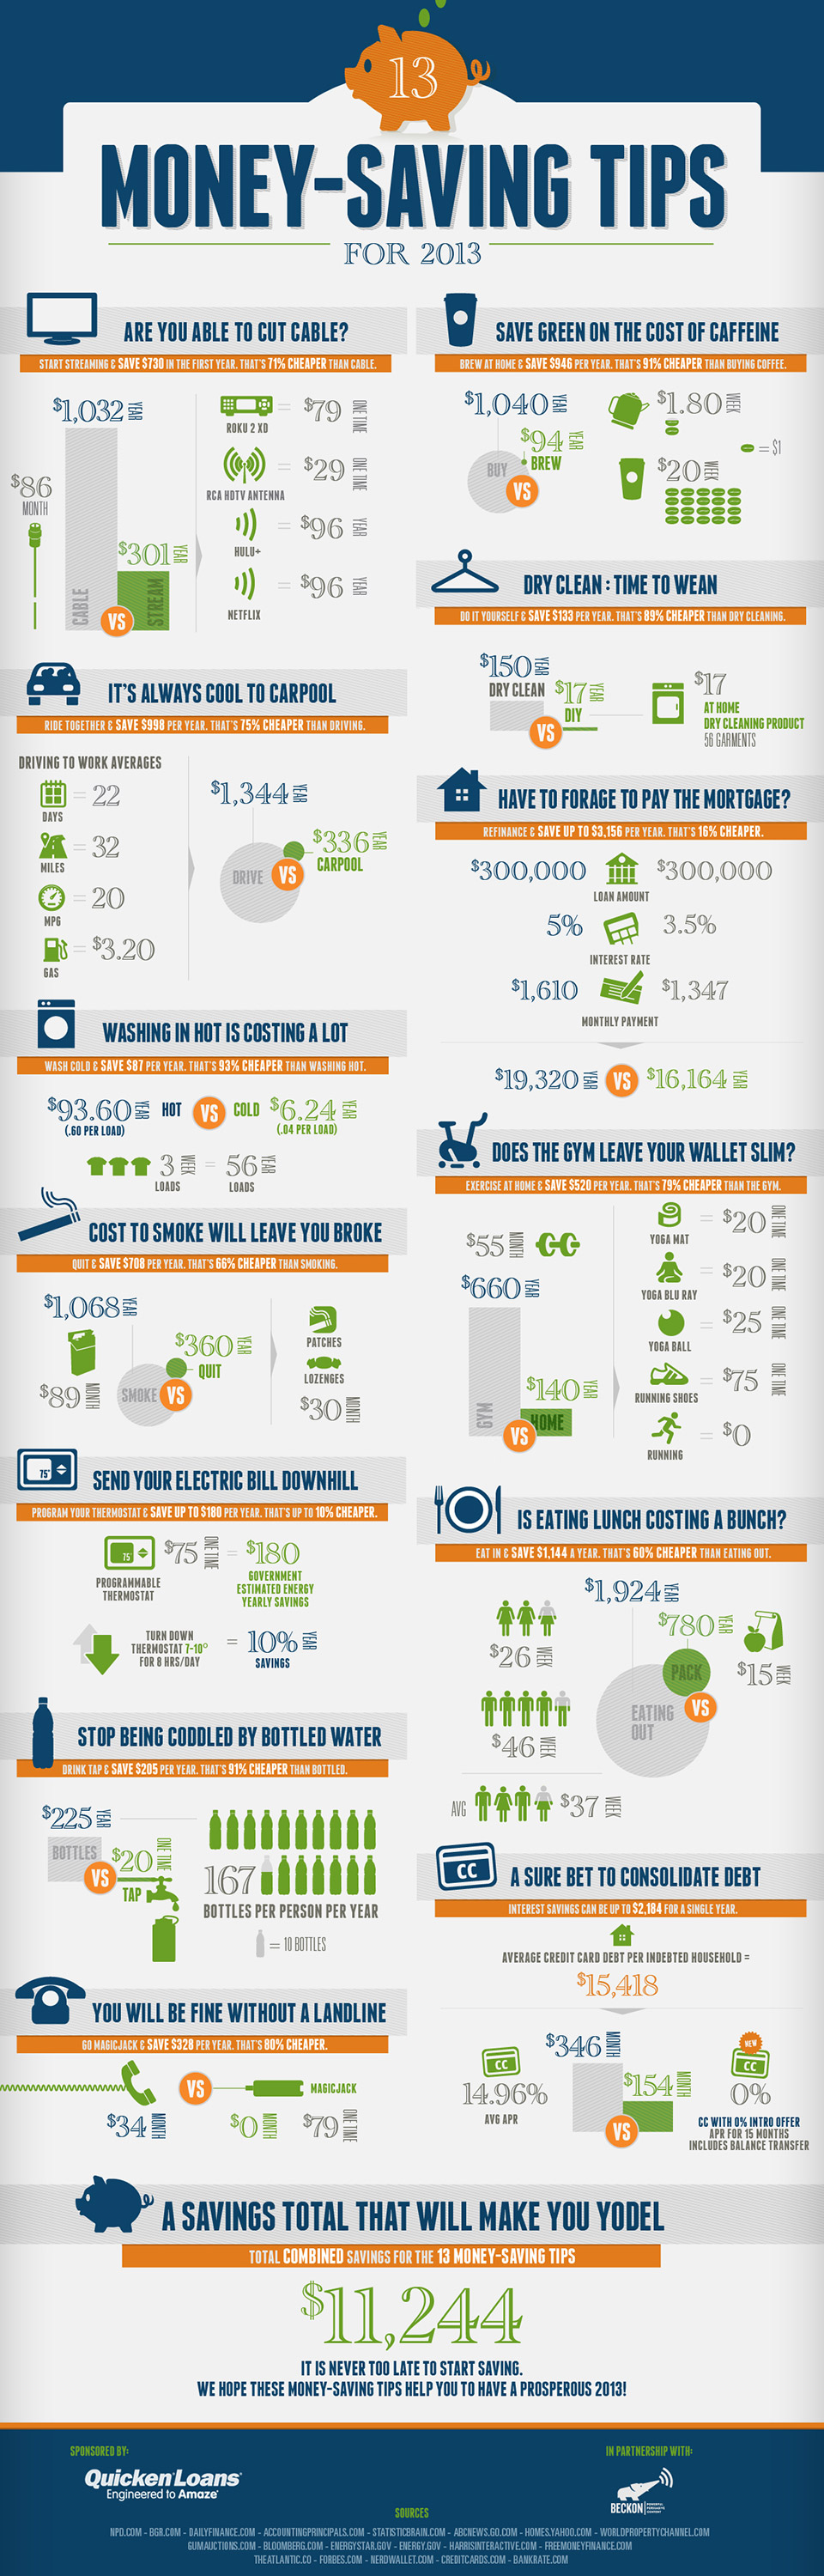 Personal Finance Tips 2013-Infographic